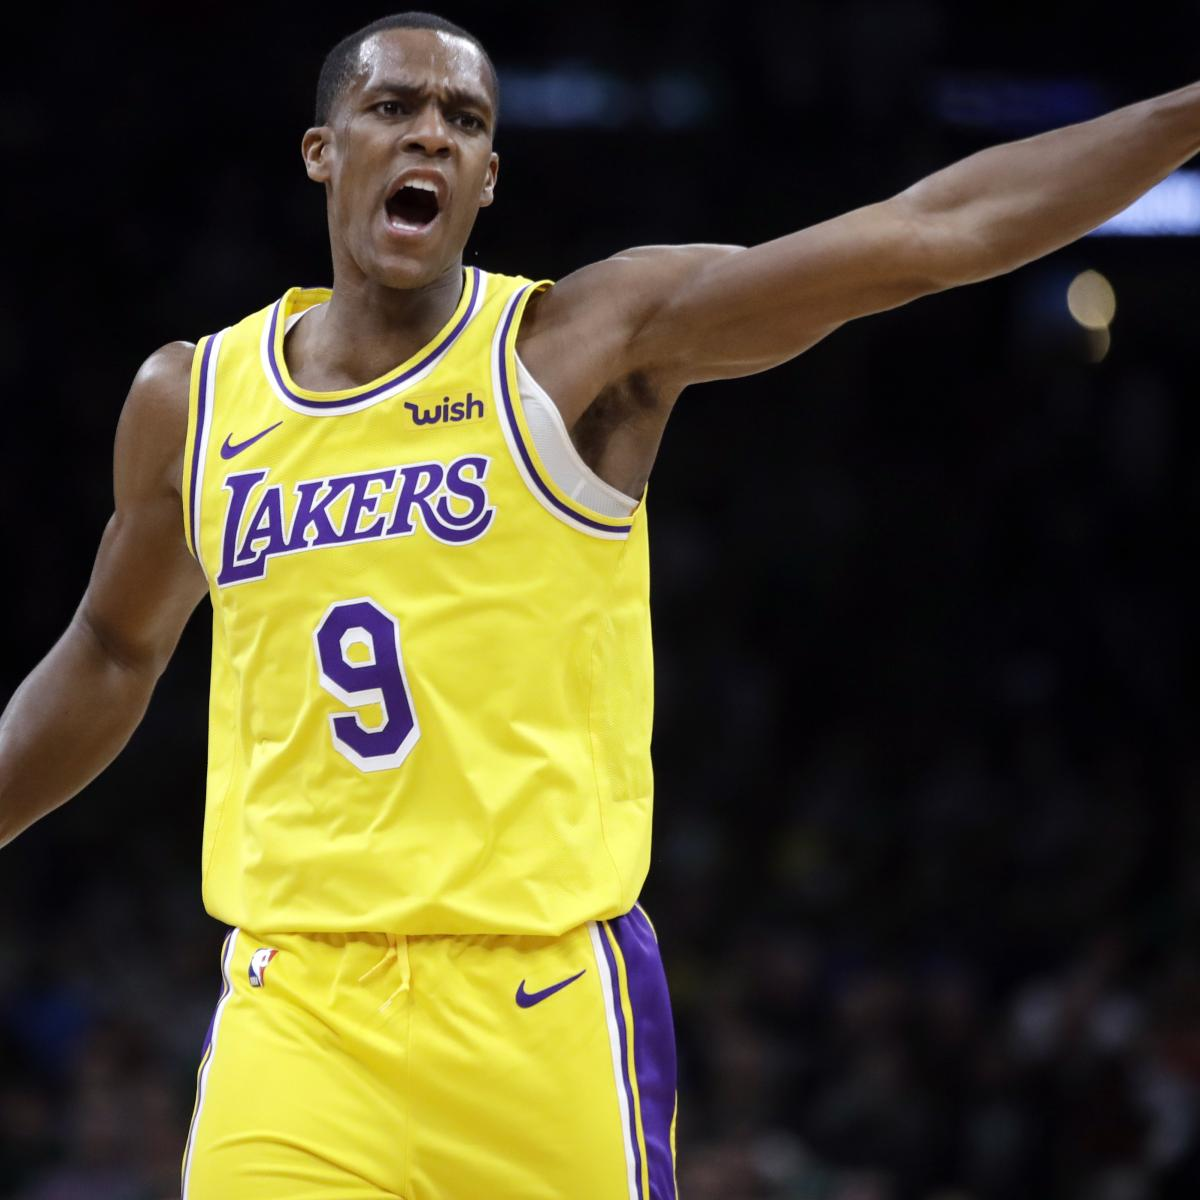 Report: Rajon Rondo Won't Be Fined For Not Sitting On